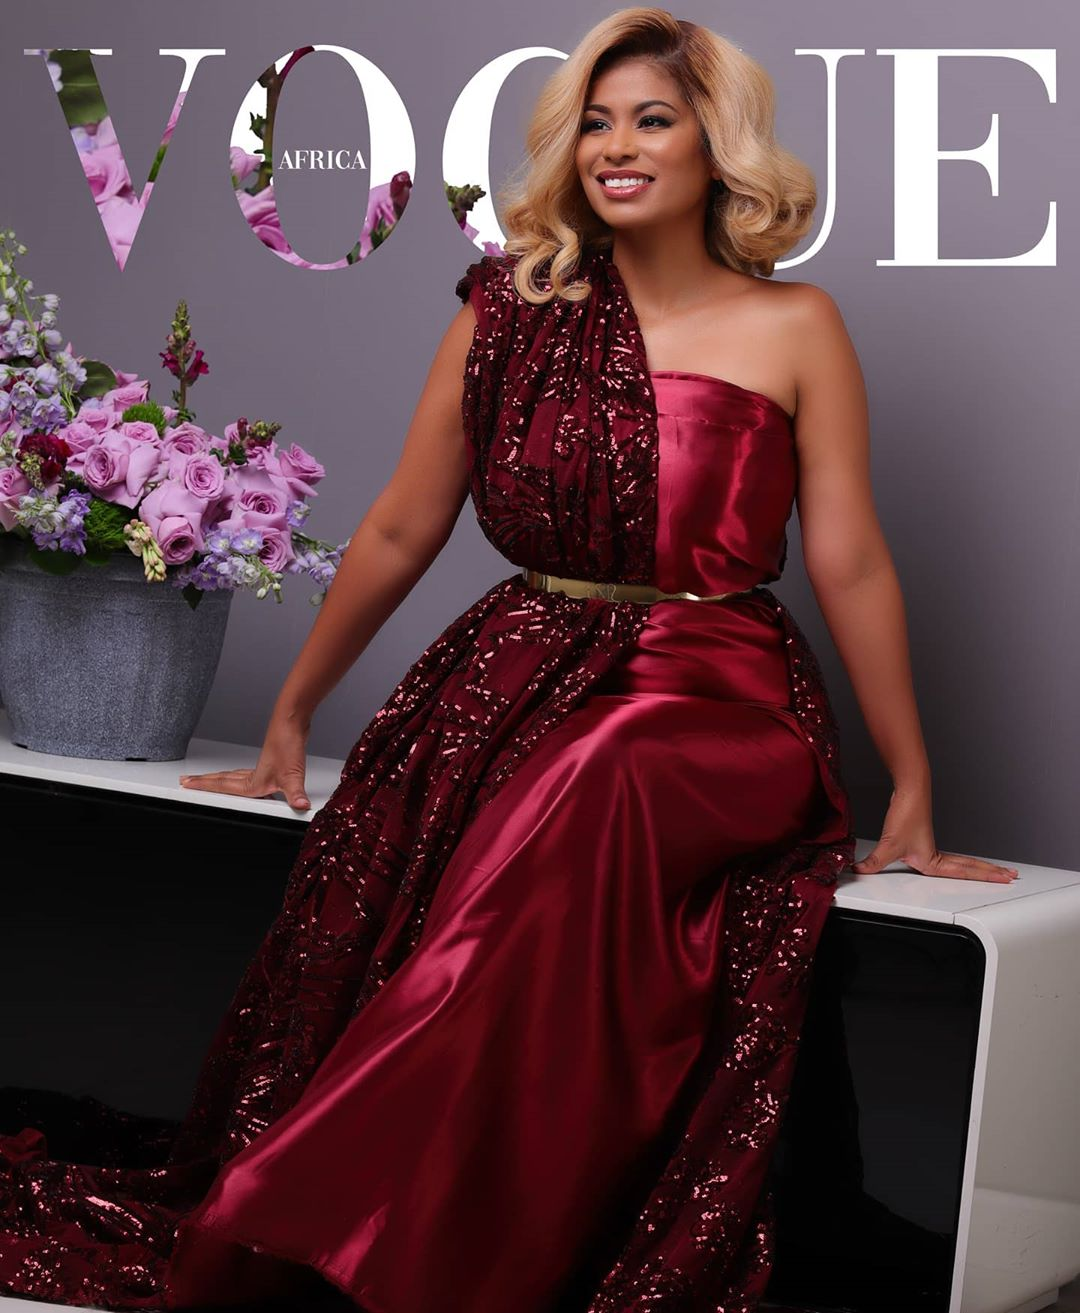 Julie Gichuru doing the Vogue Challenge